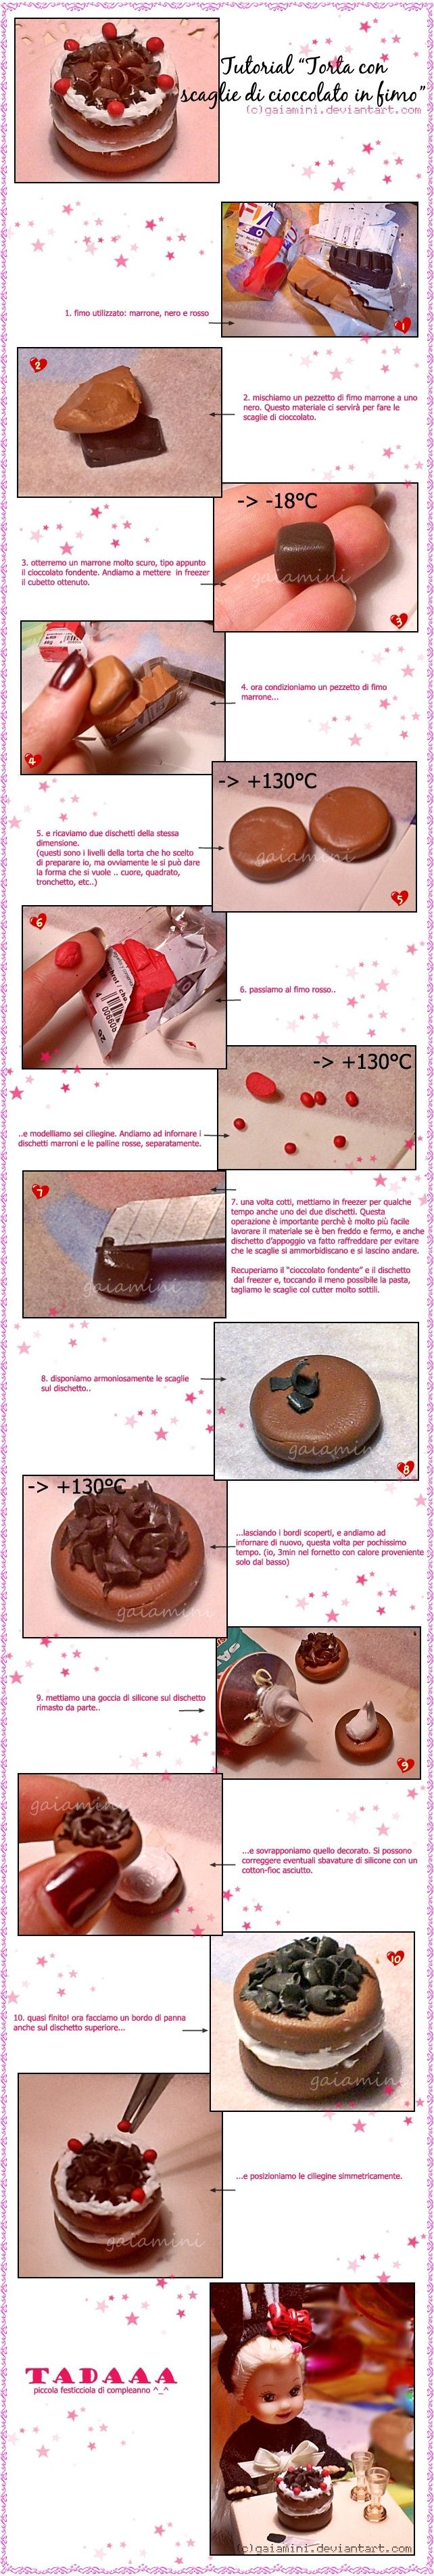 tutorial scaglie di cioccolato by gaiamini.deviantart.com on @deviantART